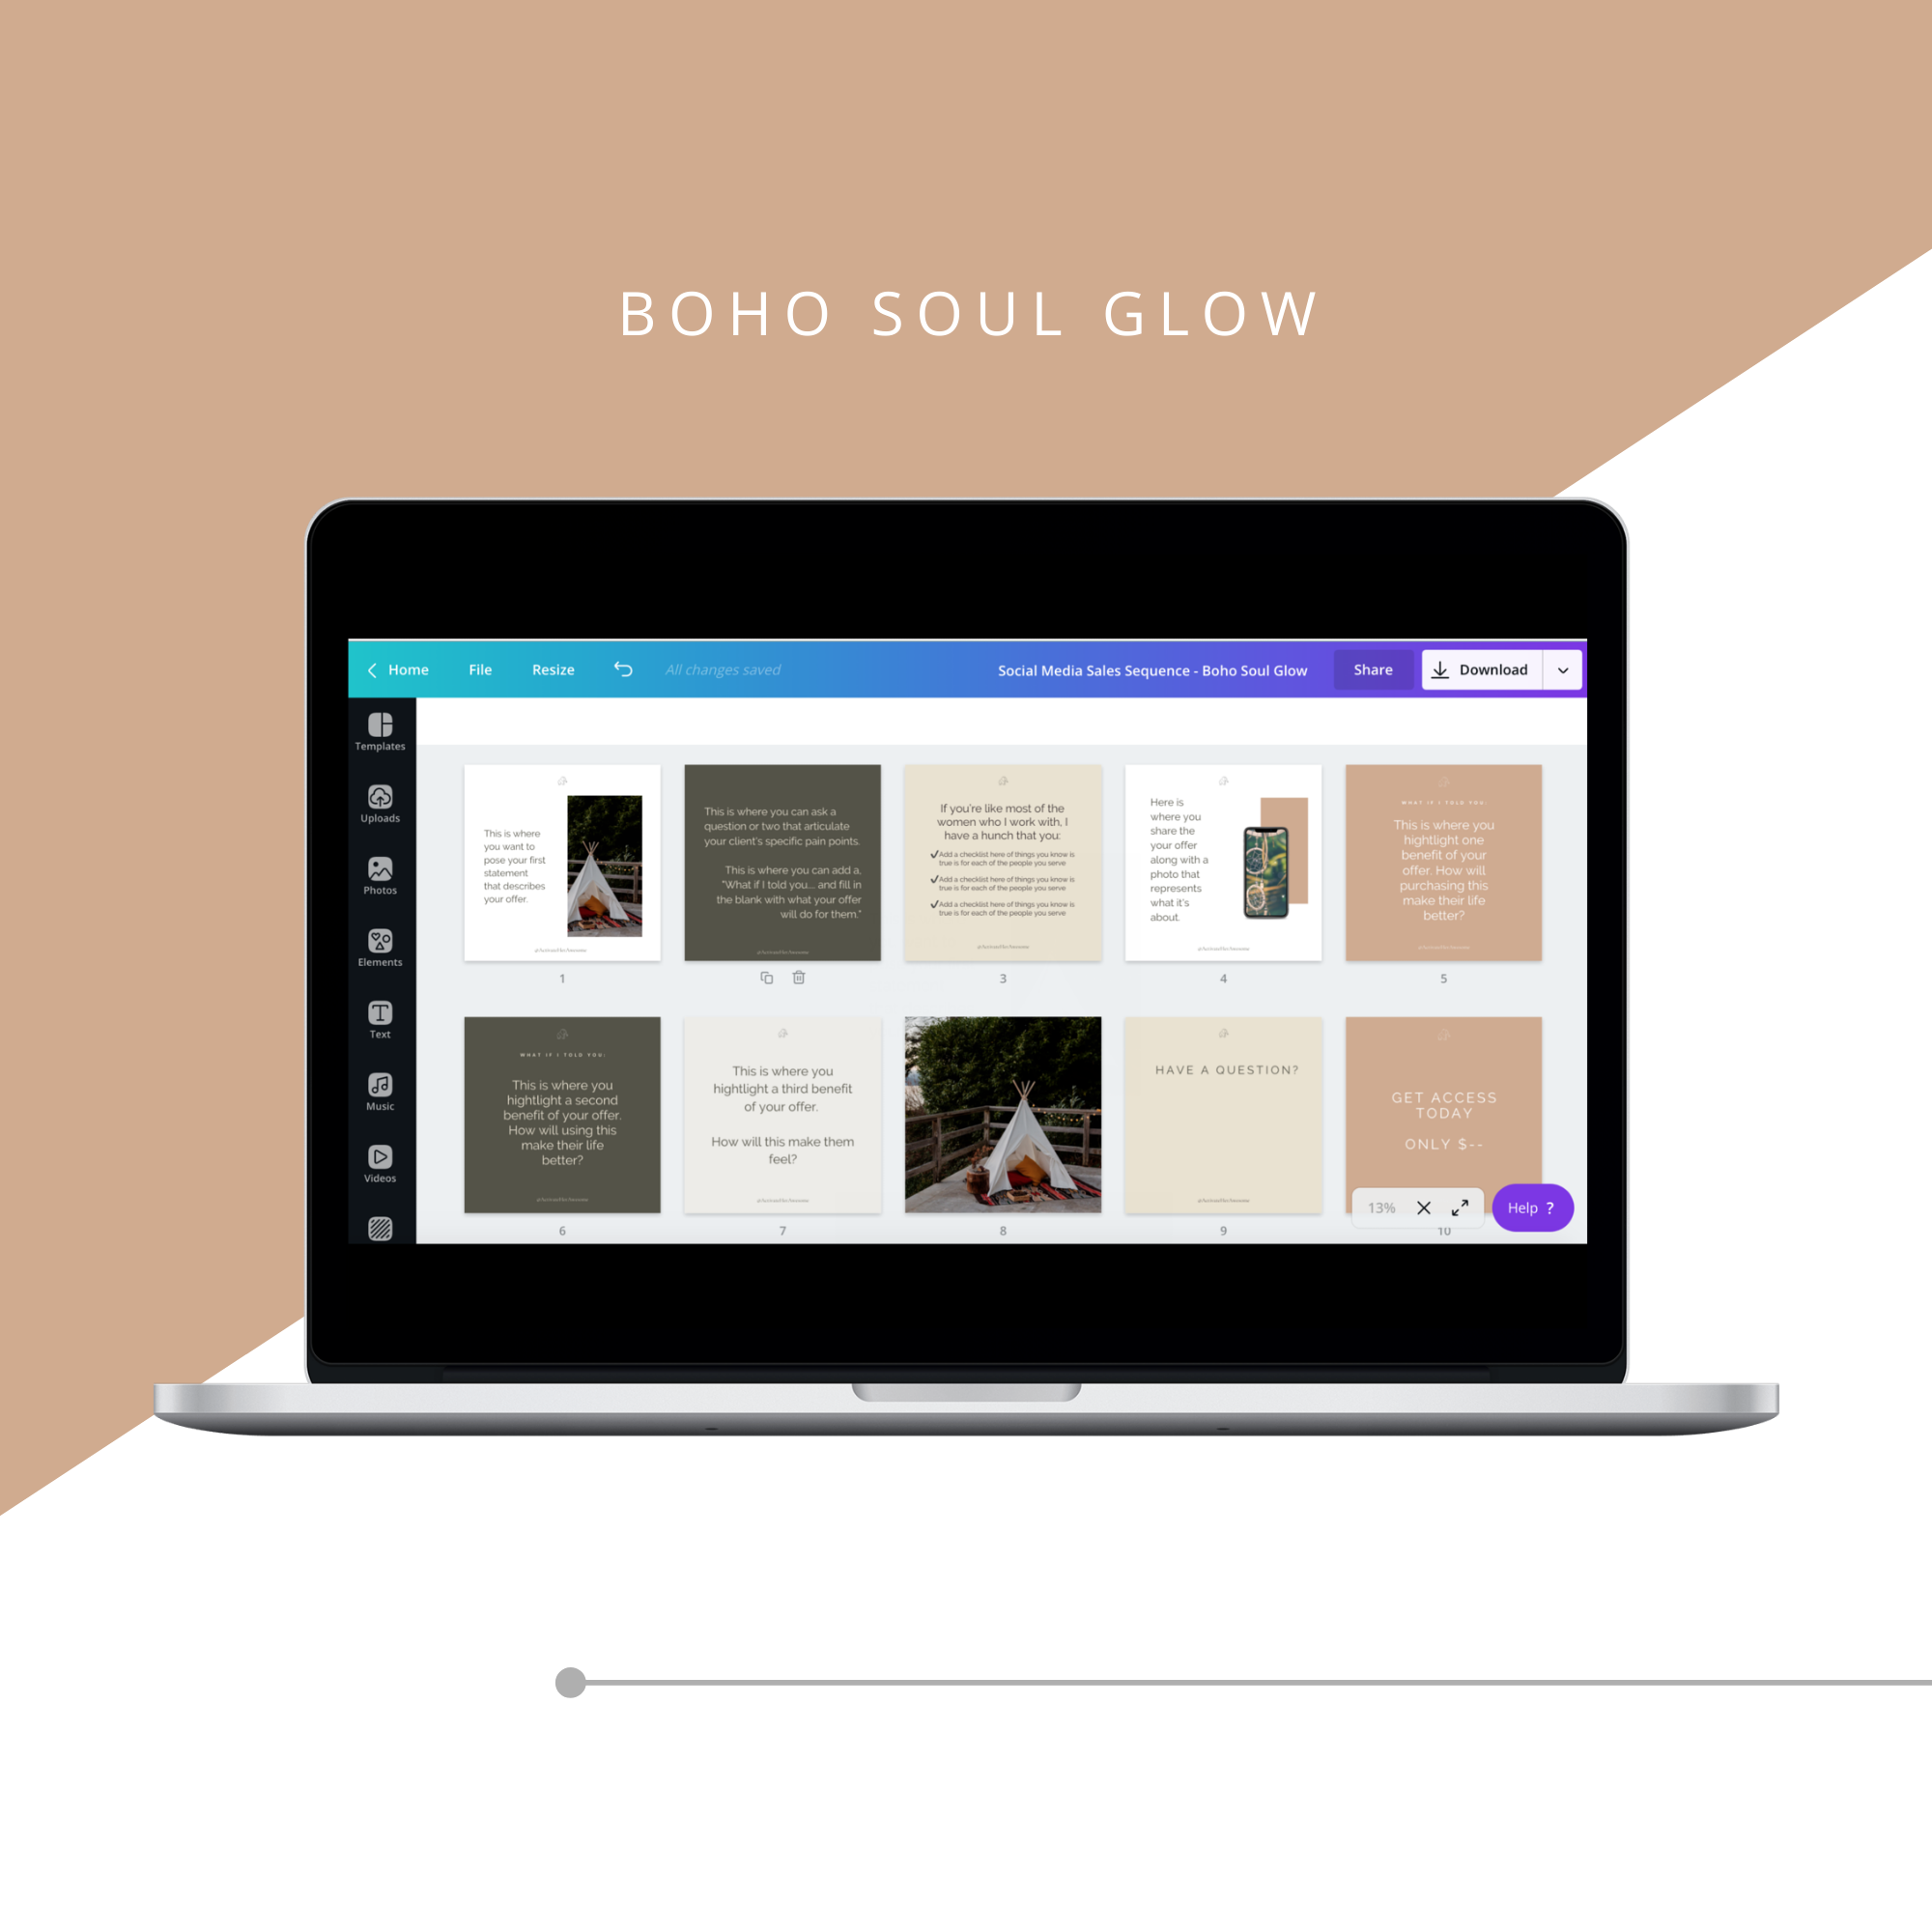 Square Social Media Sales Sequence - Boho Soul Glow